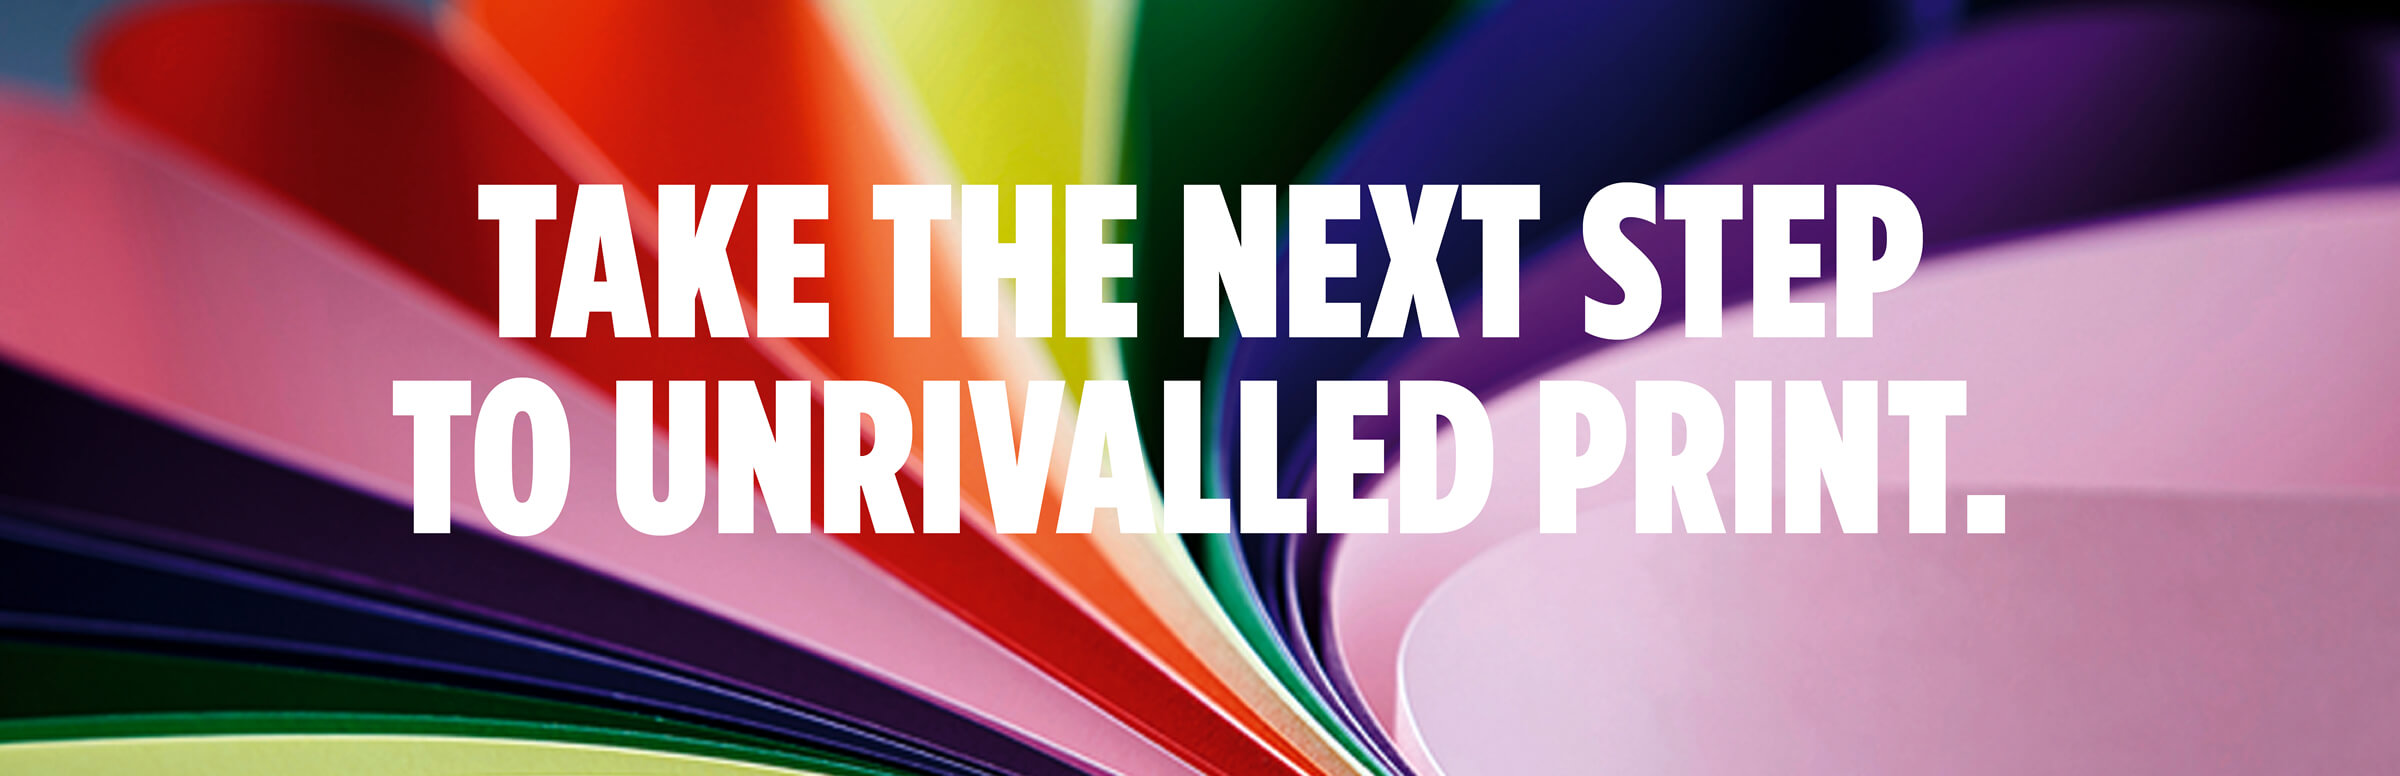 Take The Next Step To Unrivalled Print